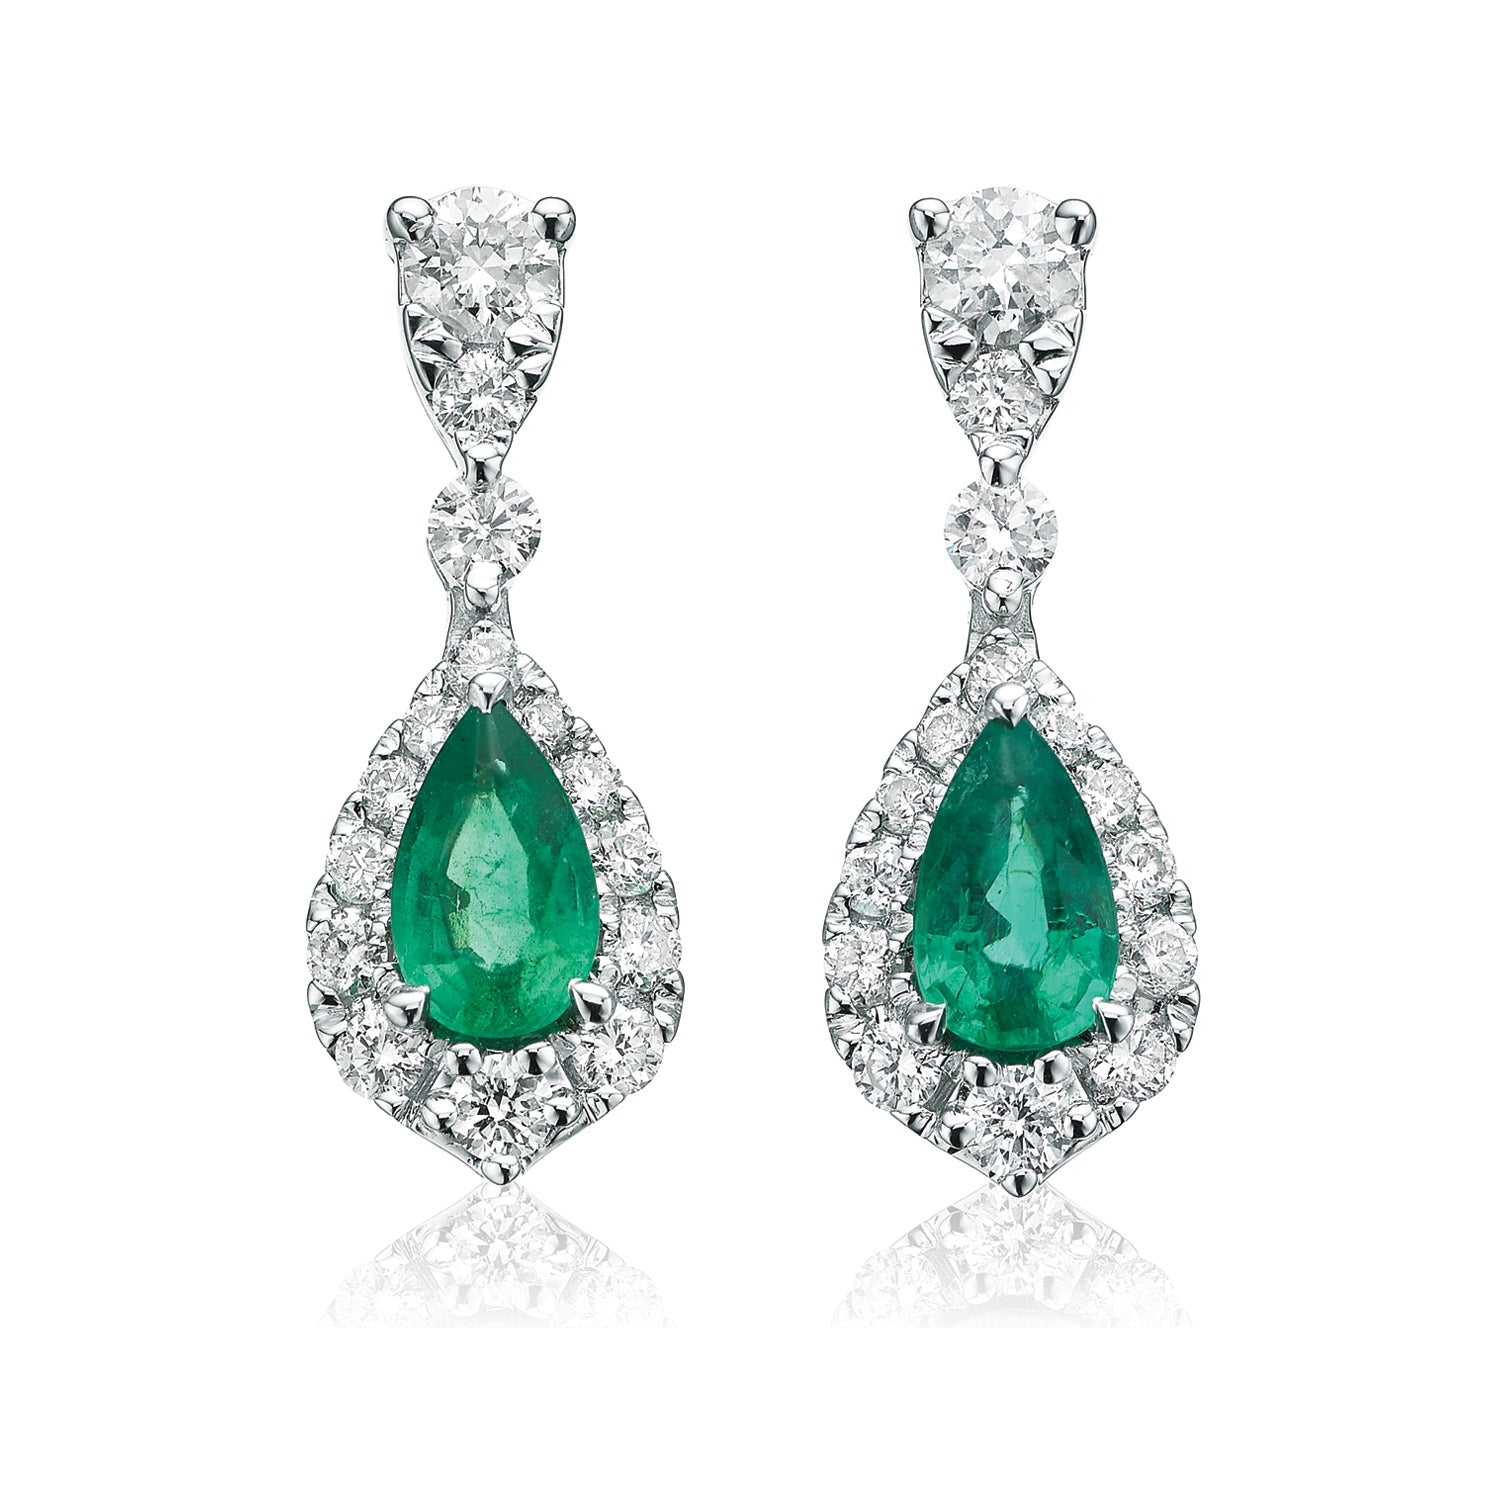 9ct White Gold Pear & Round Brilliant Cut  0.30 CARAT tw of Diamonds Natural Emerald